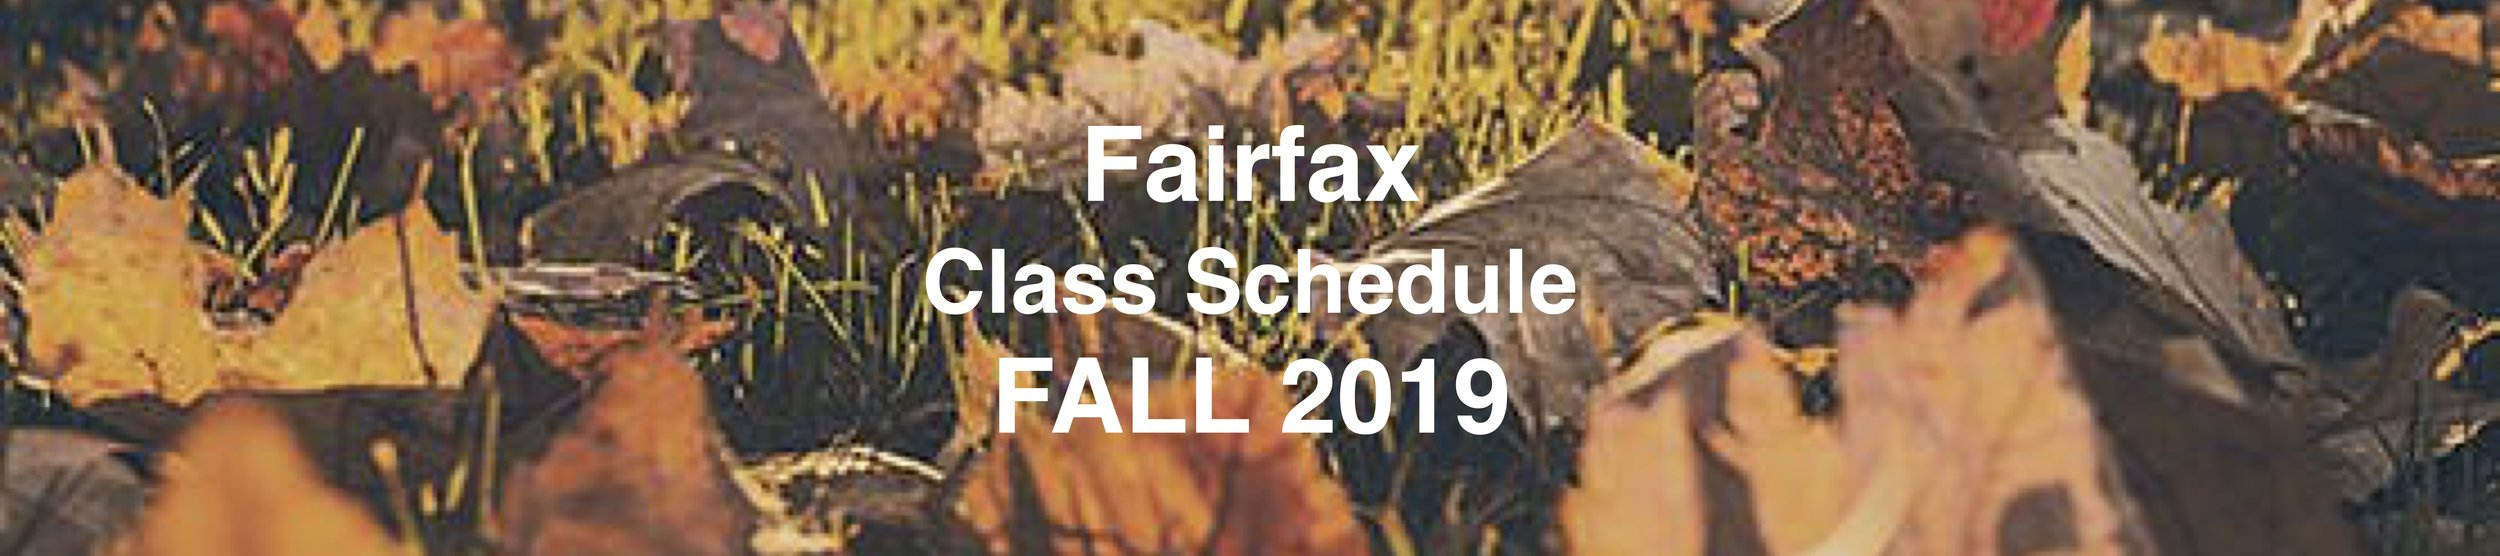 Sched Page Image Doc FFX Fall.jpg